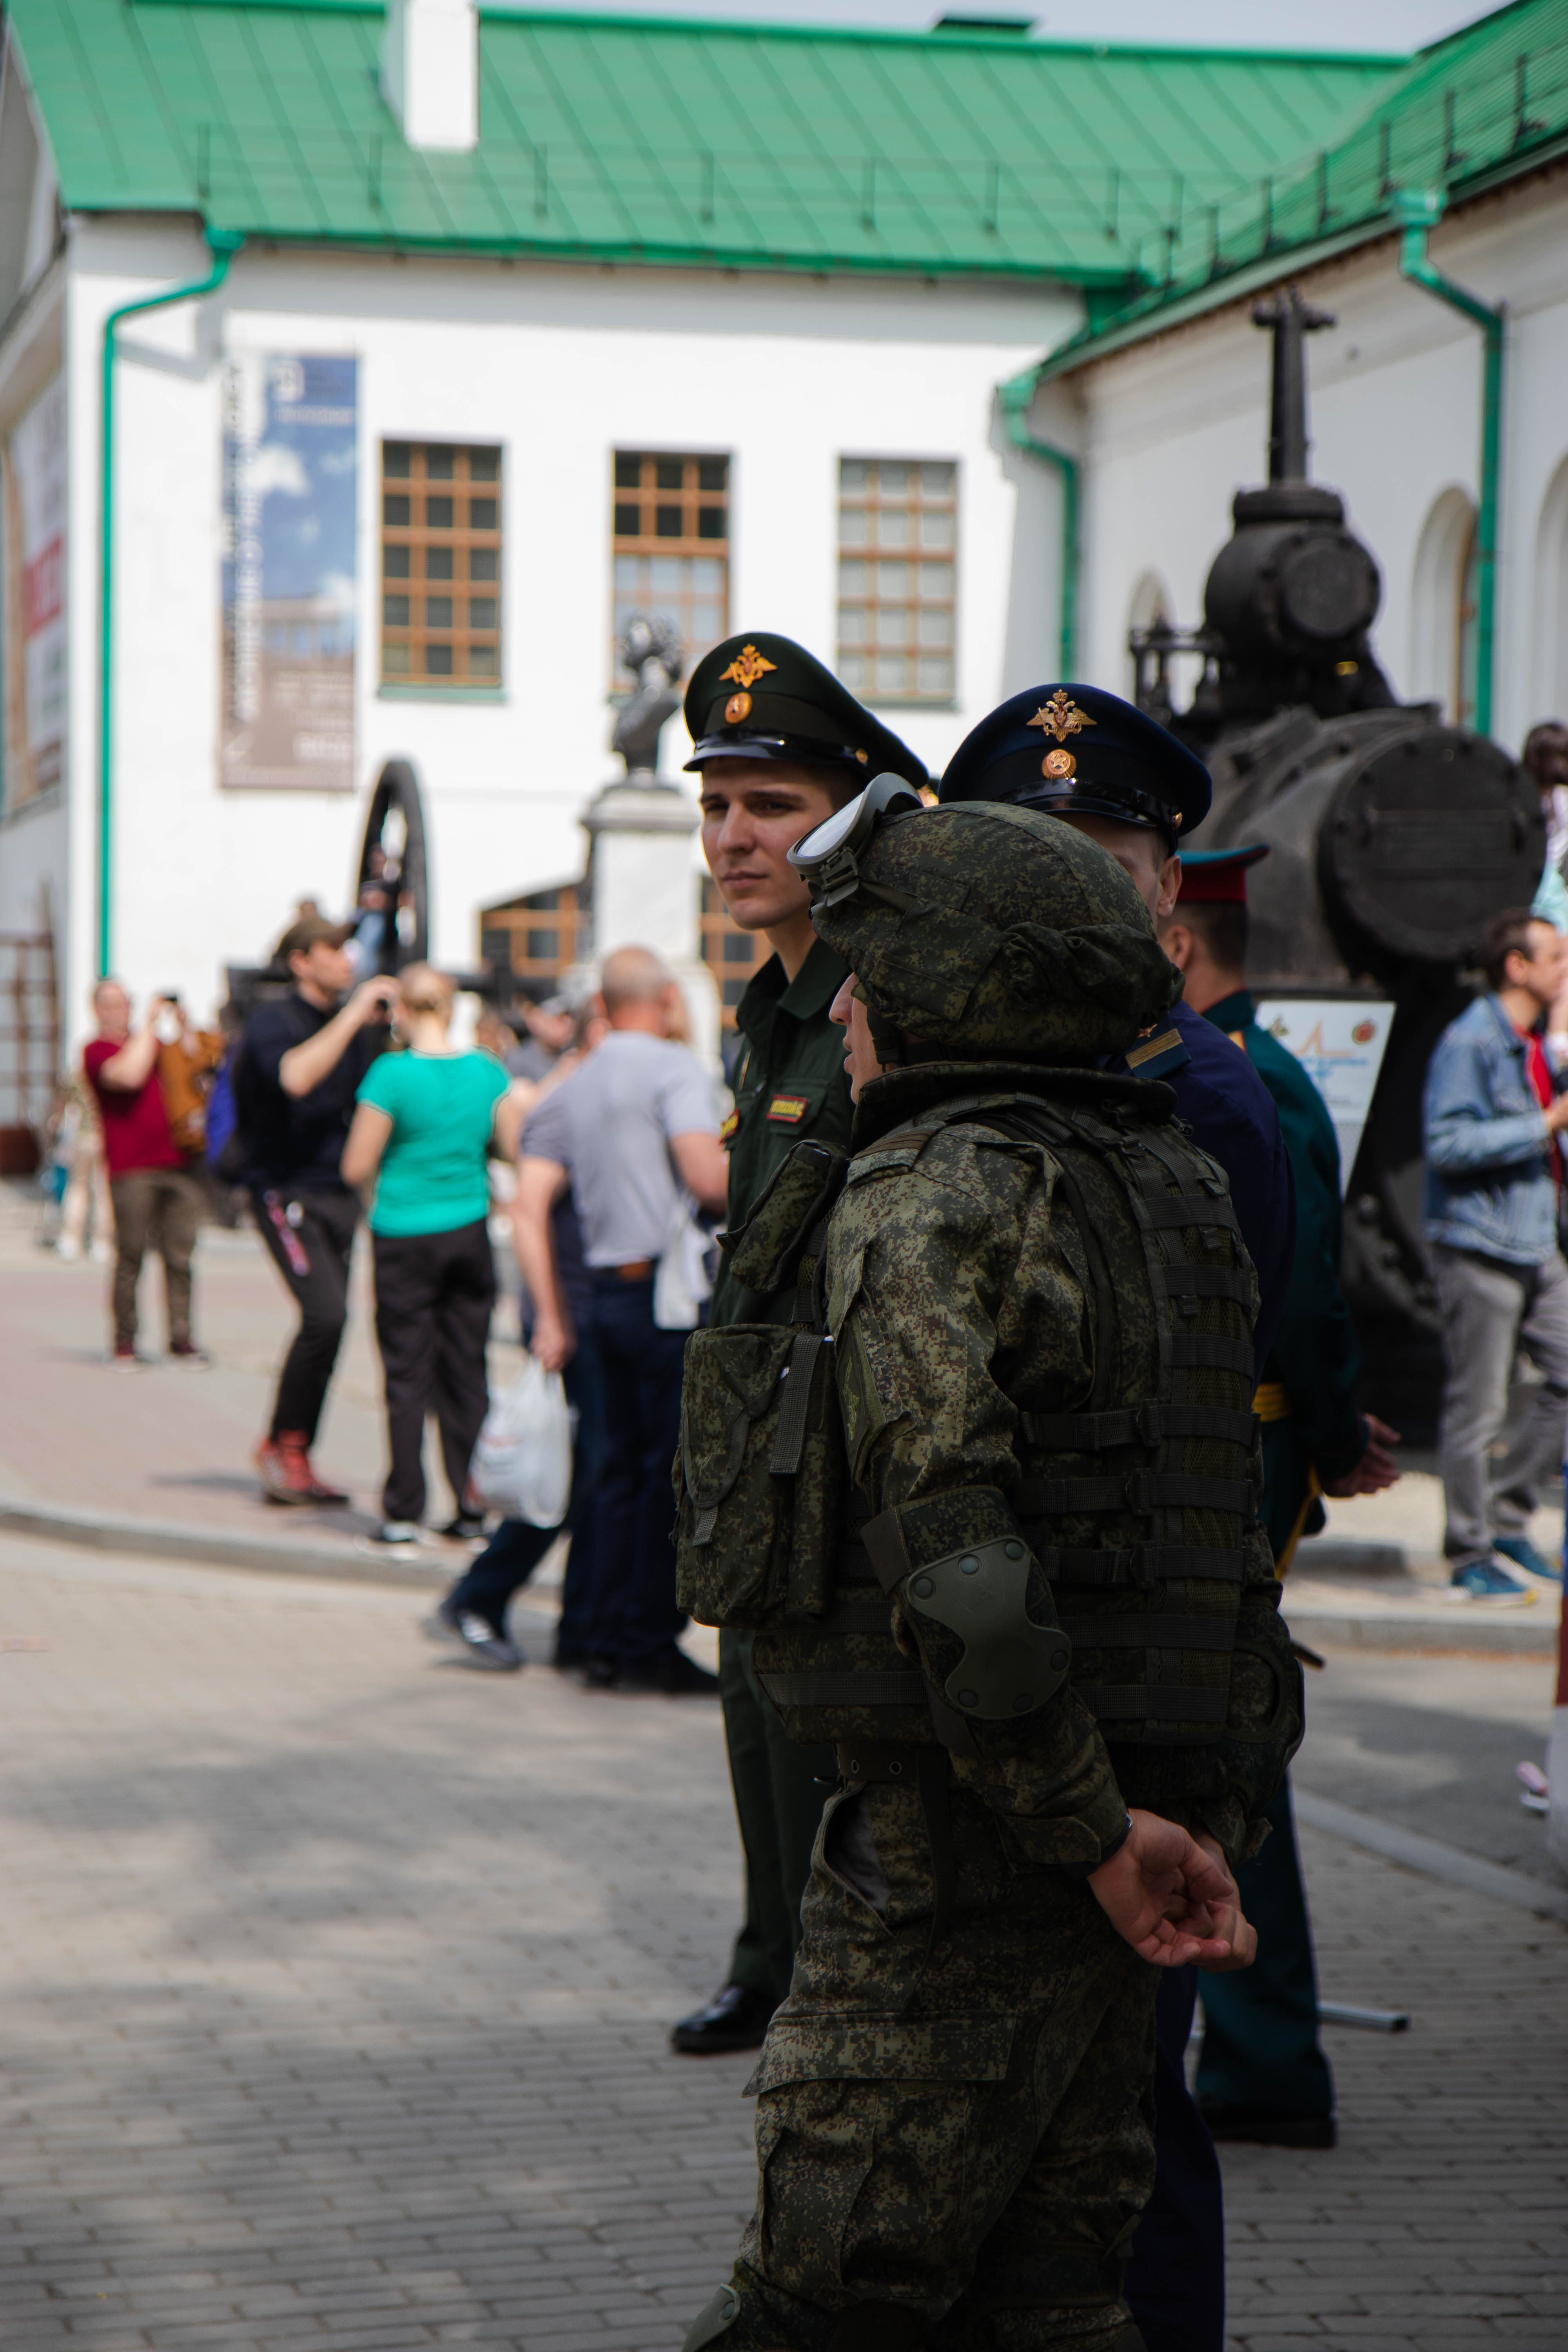 man in black and green camouflage uniform standing on street during daytime